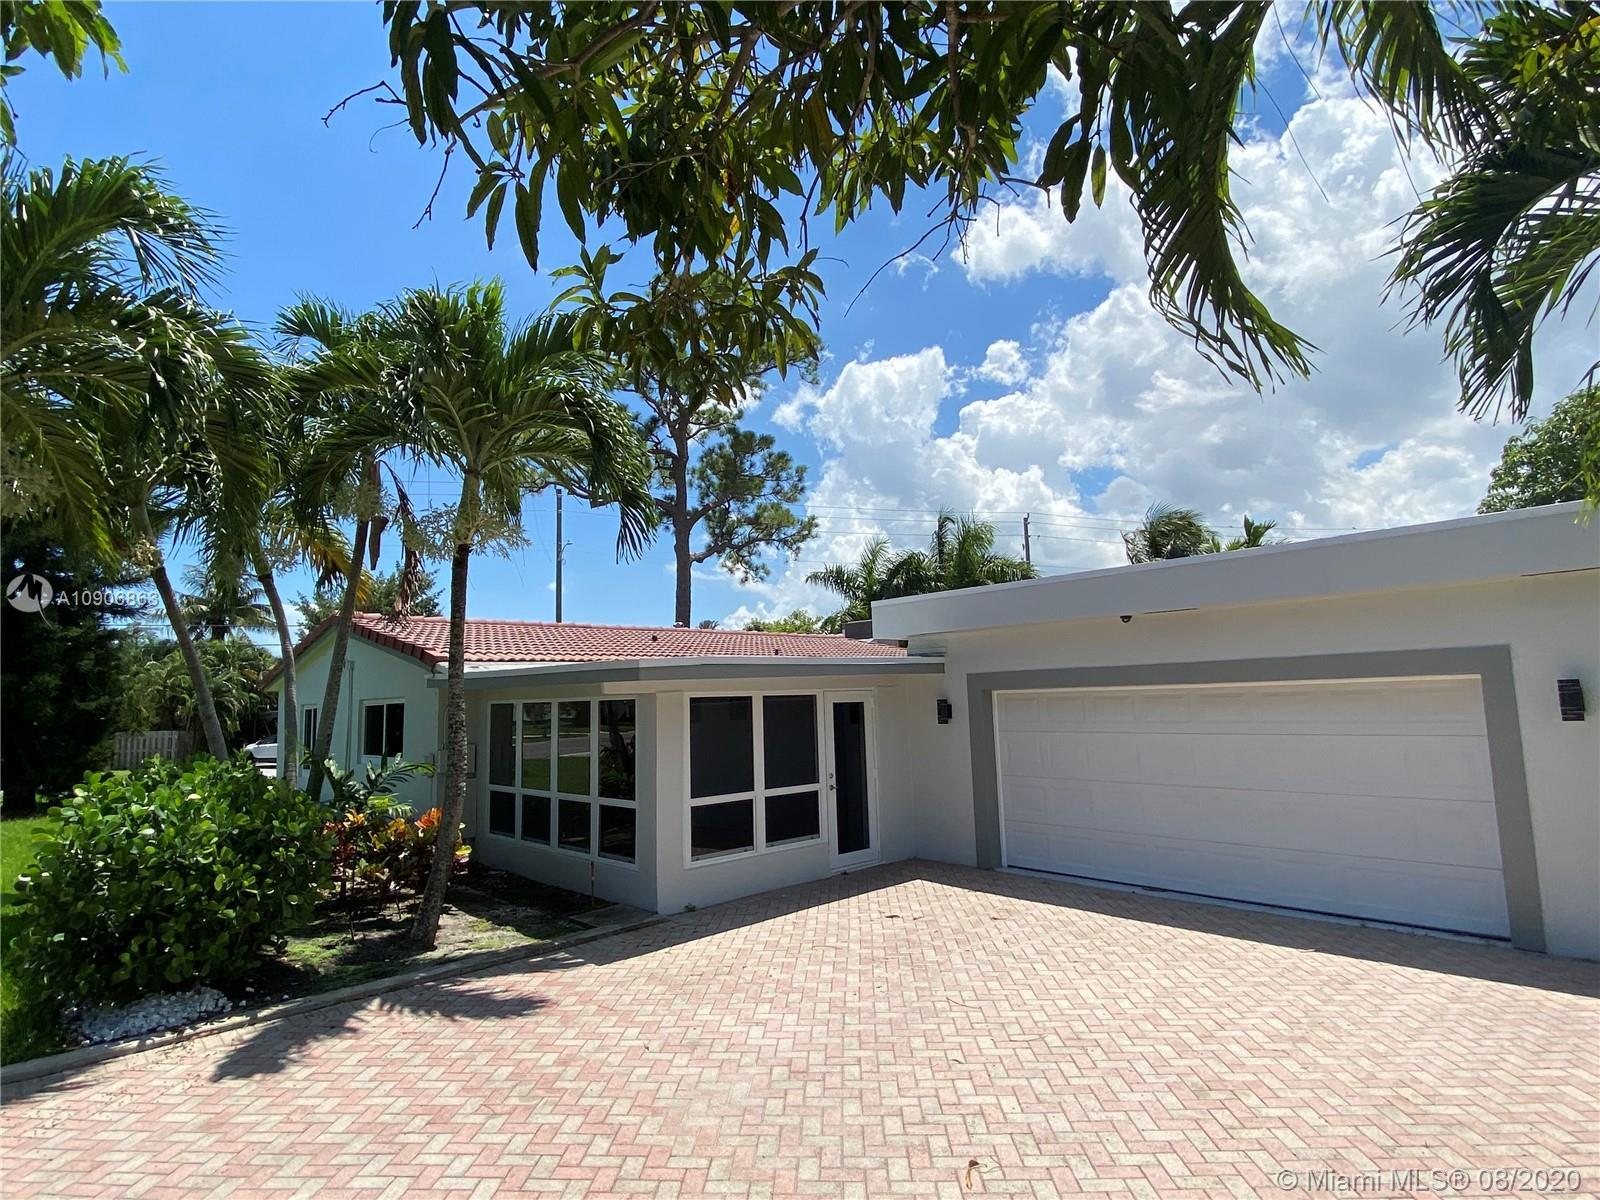 Beautiful Updated Home In A Great Location.. Home Features Impact Windows And Doors, Modern Bathroom